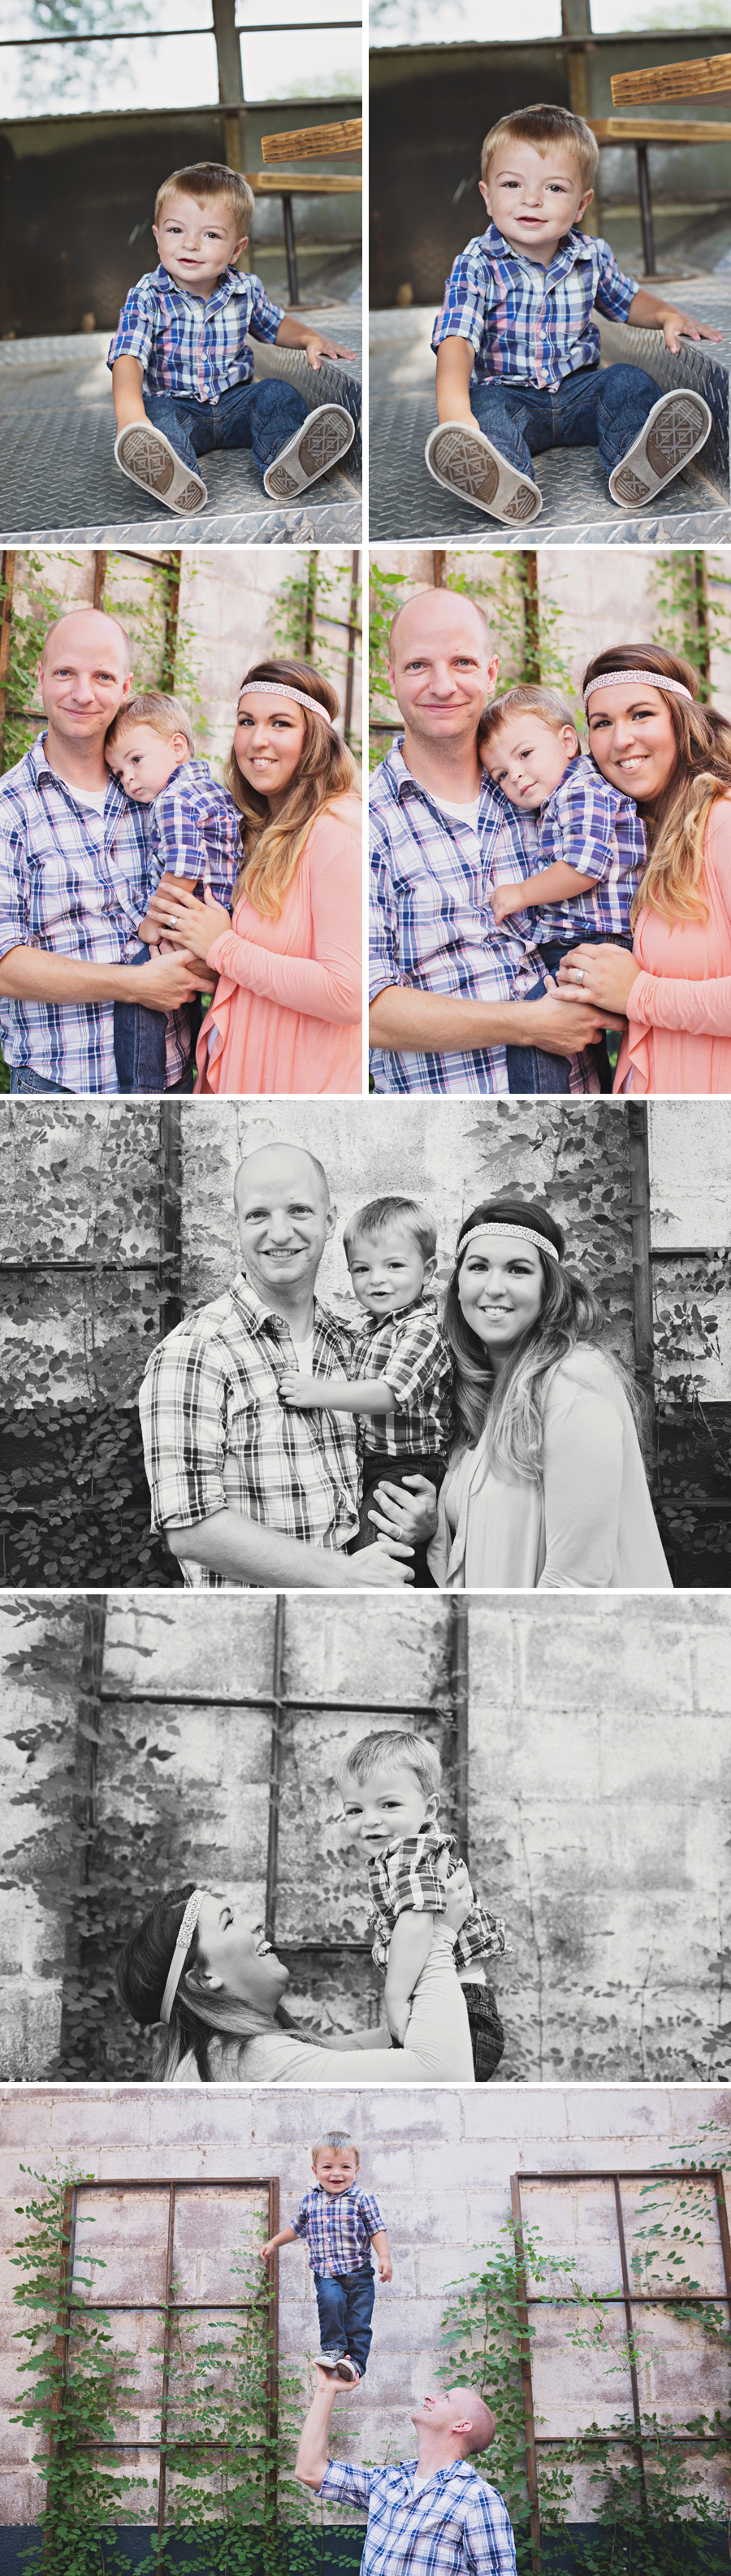 Dallas-Family-PhotographerG002